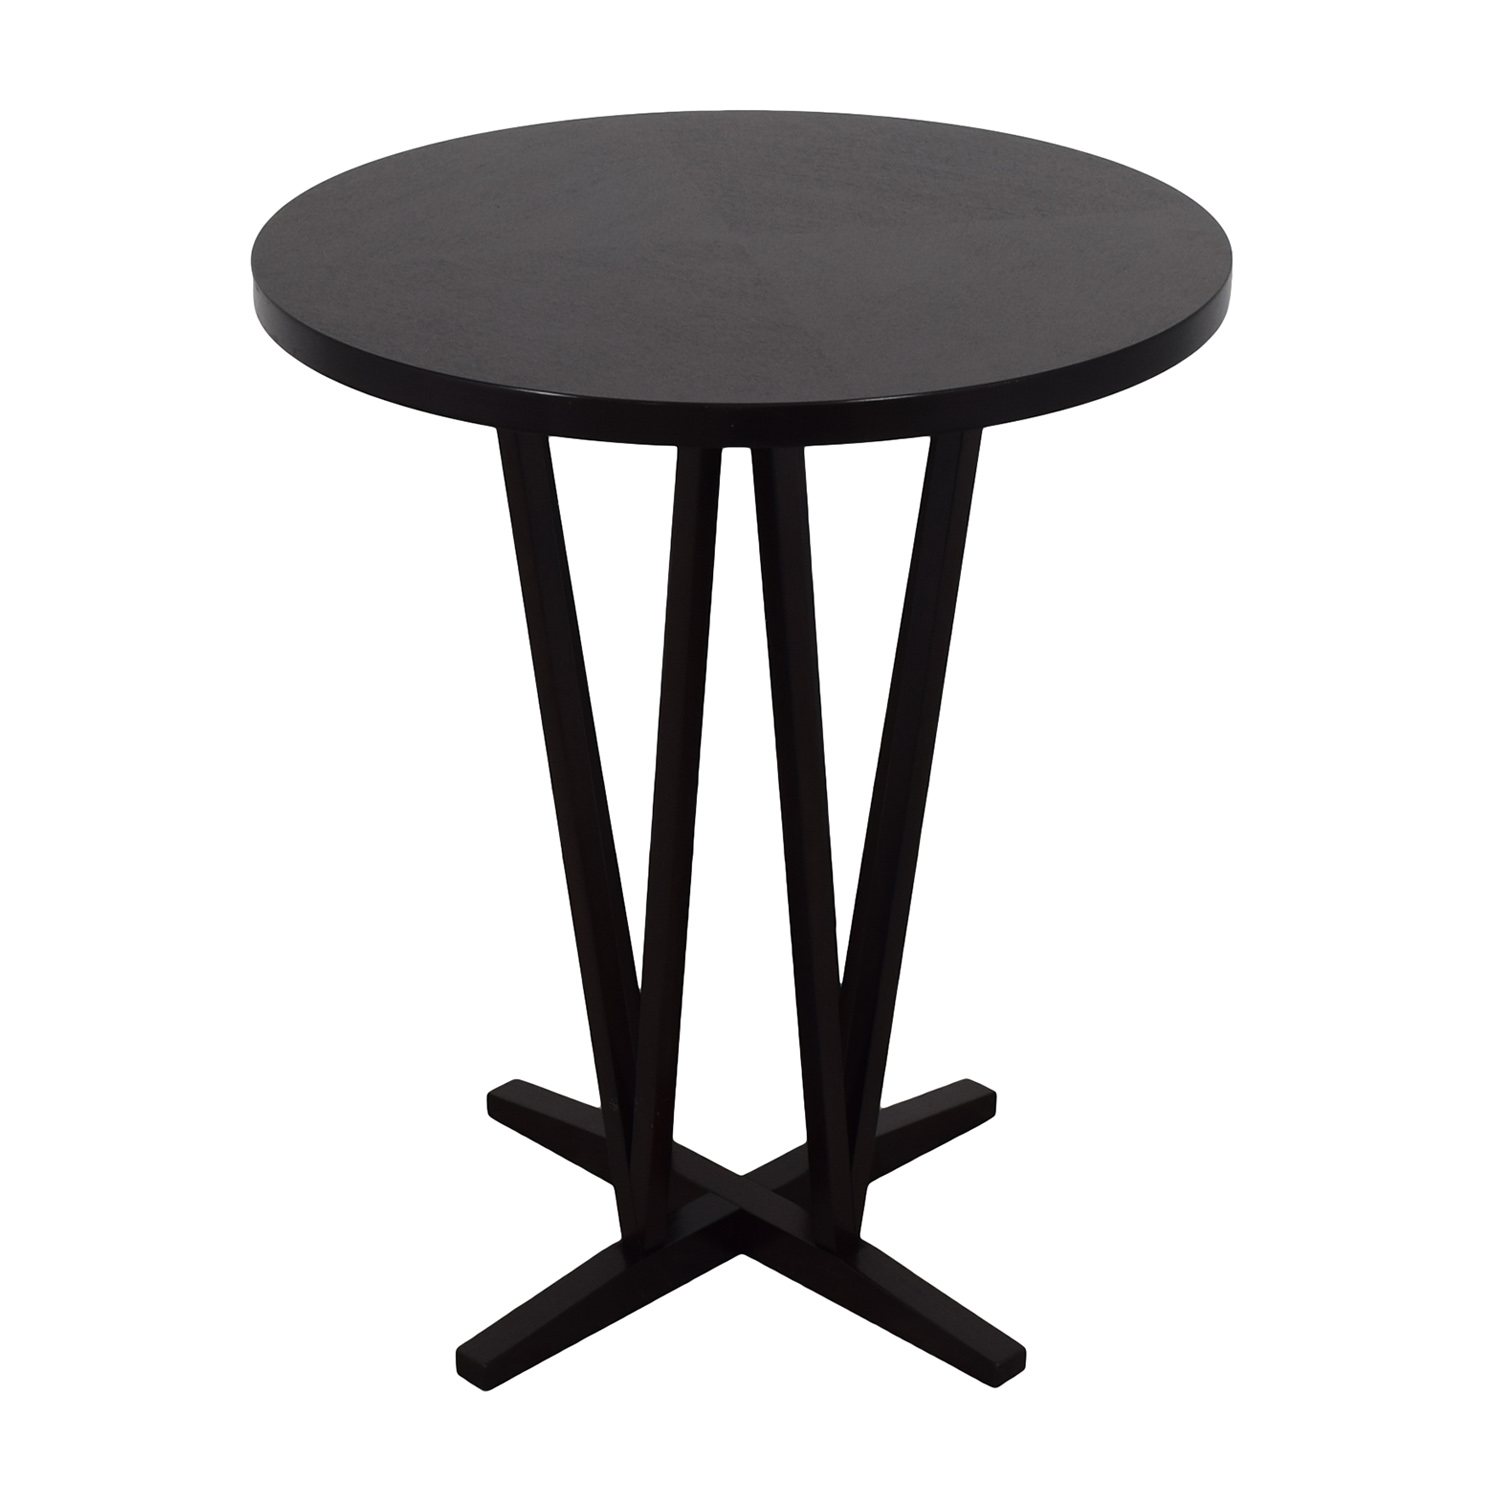 Southern Enterprises Southern Enterprises Devon Bistro High Top Table second hand